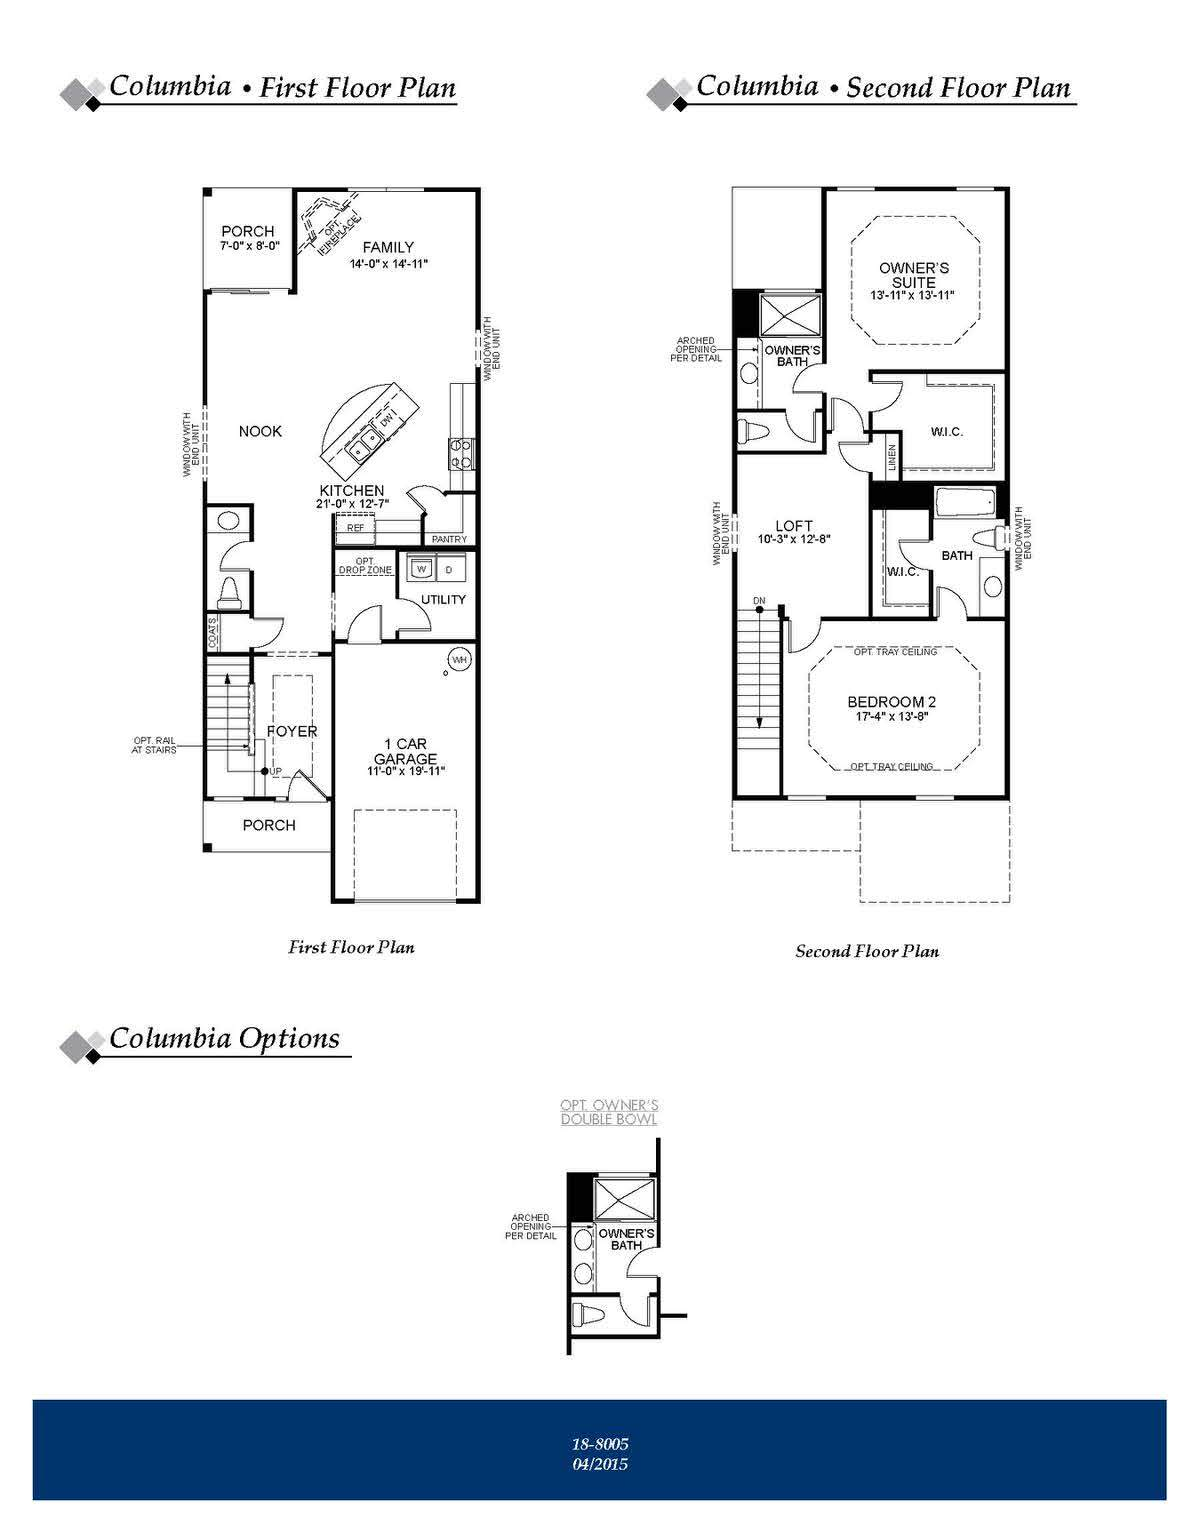 adams 3000 floor plan interior, adams homes model 2265, adams homes 2508 plan, adams homes model 2010, adams homes 1820 plan, your plans, adams homes kitchens, adams homes gulf breeze fl, adams homes 2169 model, adams homes layout, adams homes model 3000, adams home plans by number, adams homes 2240 model, on 1665 adams homes floor plans